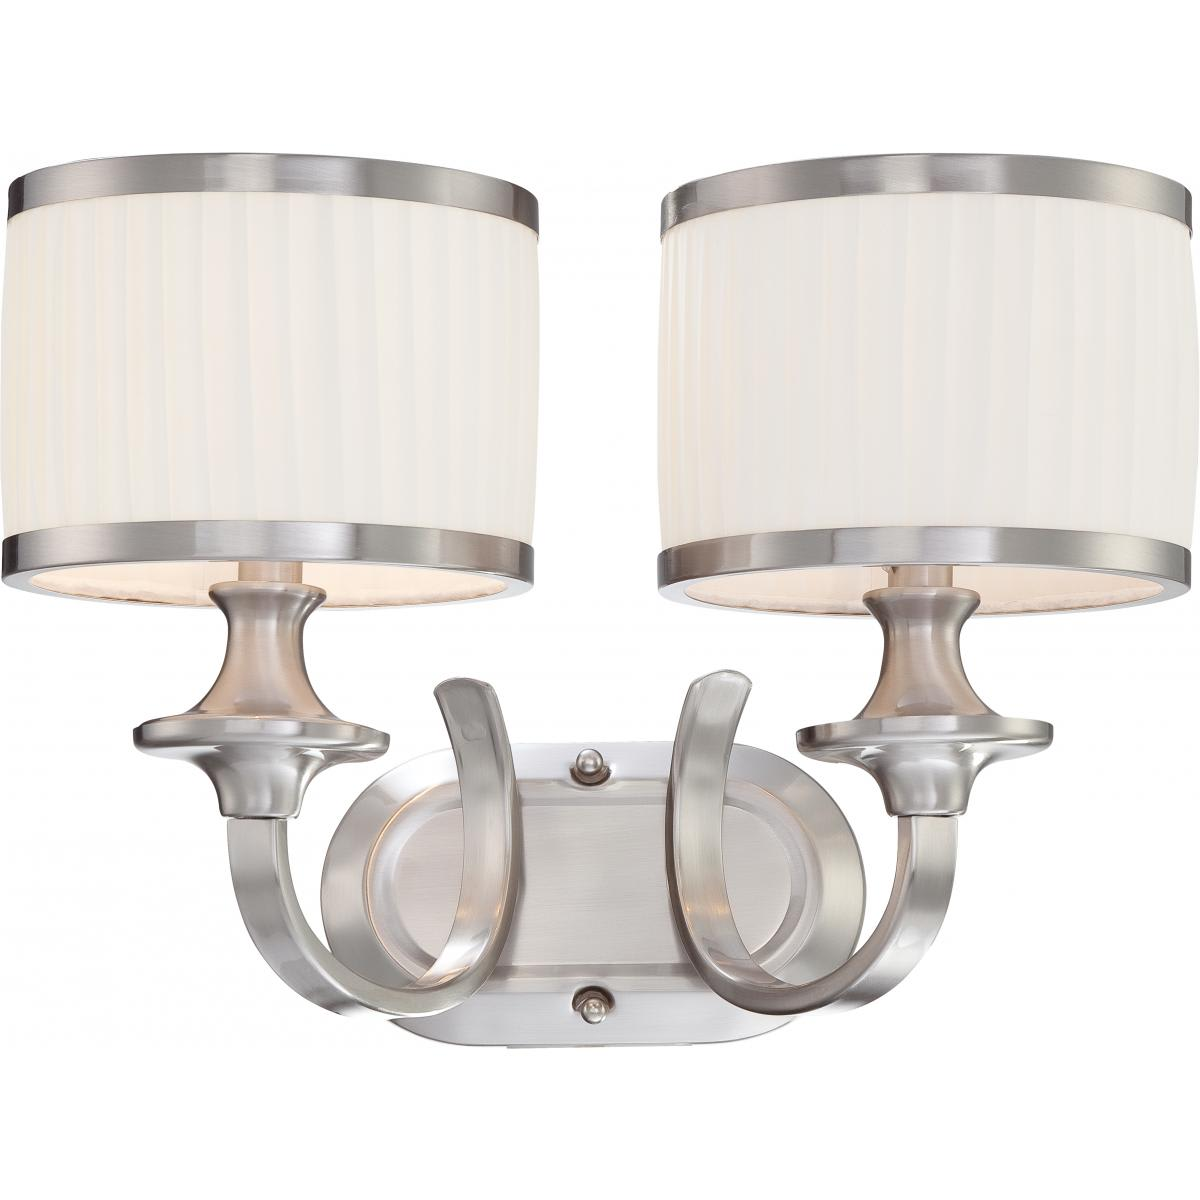 Nuvo Lighting 60 4732 Brushed Nickel Candice 2 Light 16 Wide Bathroom Vanity Light With Pleated Fabric Shades And Metal Accents Lightingdirect Com